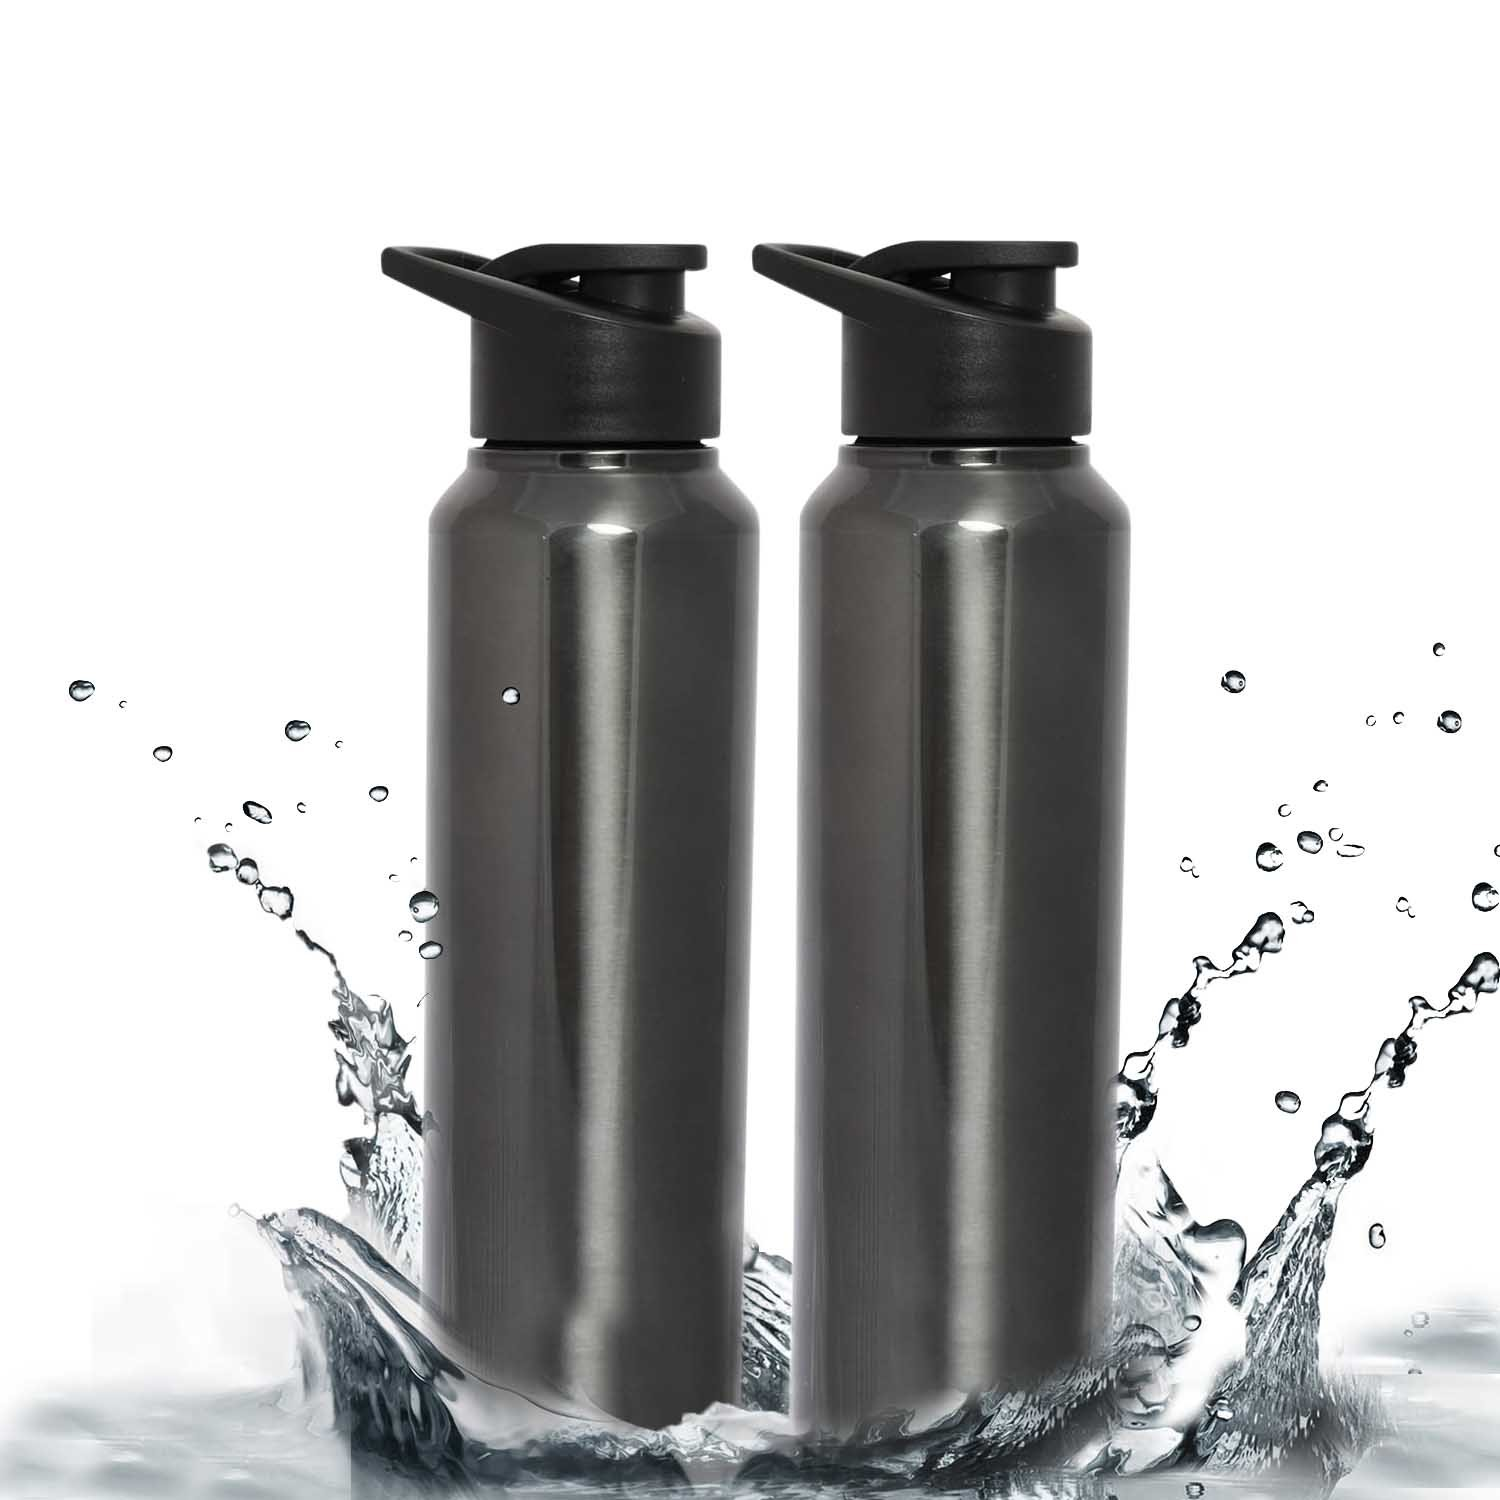 985ad1093a Buy Zafos Stainless Steel Water Bottle Set, 1 Litre, Set of 2, Glossy Black  (GlossyChromoBlack-1LSetof2) Online at Low Prices in India - Amazon.in